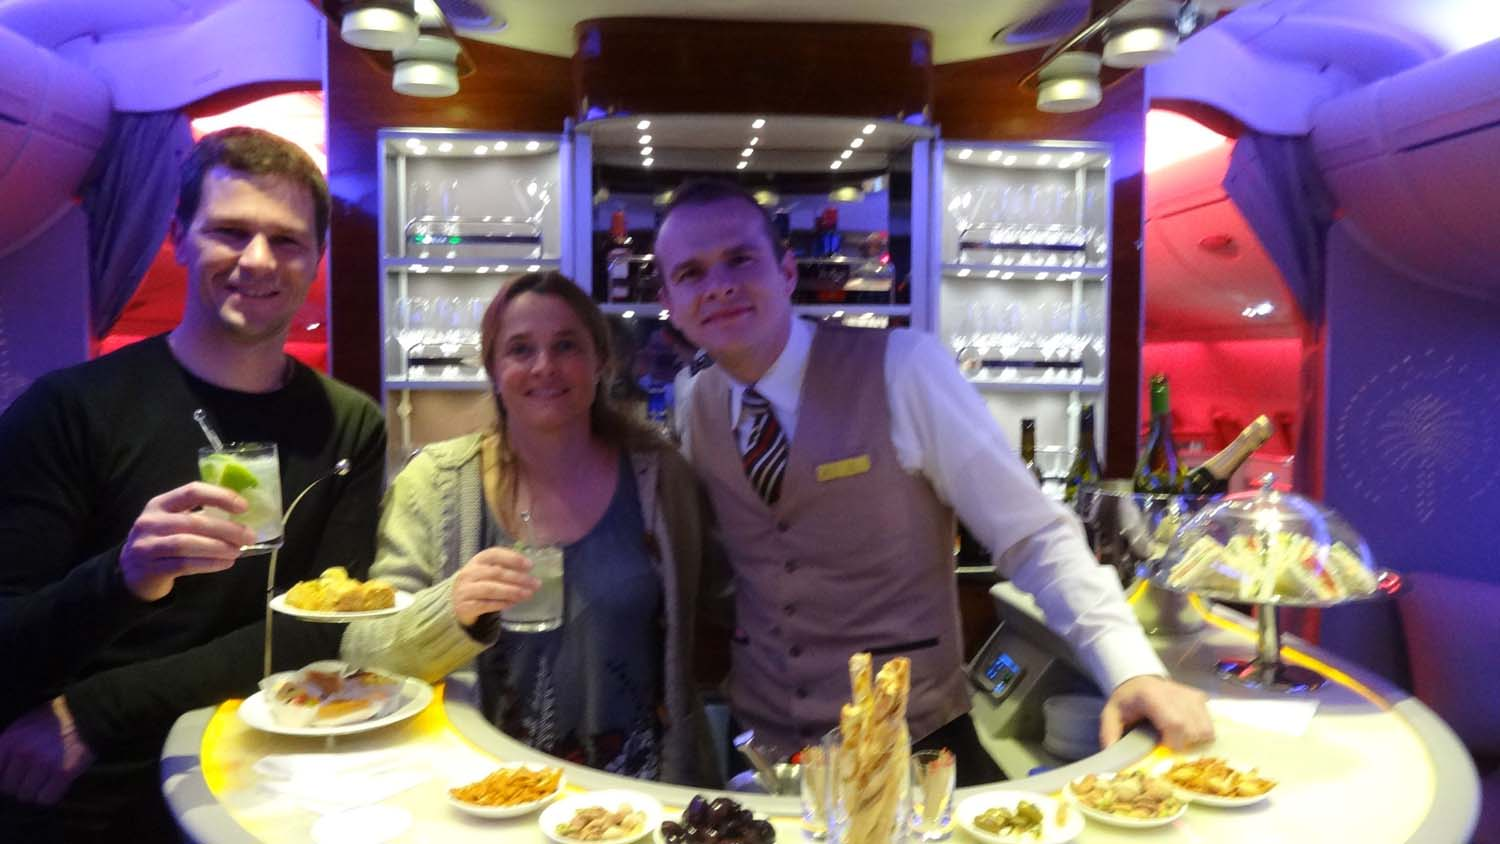 celebrating a new chapter of our lives and Jude's birthday in the bar on the upper deck of the A380